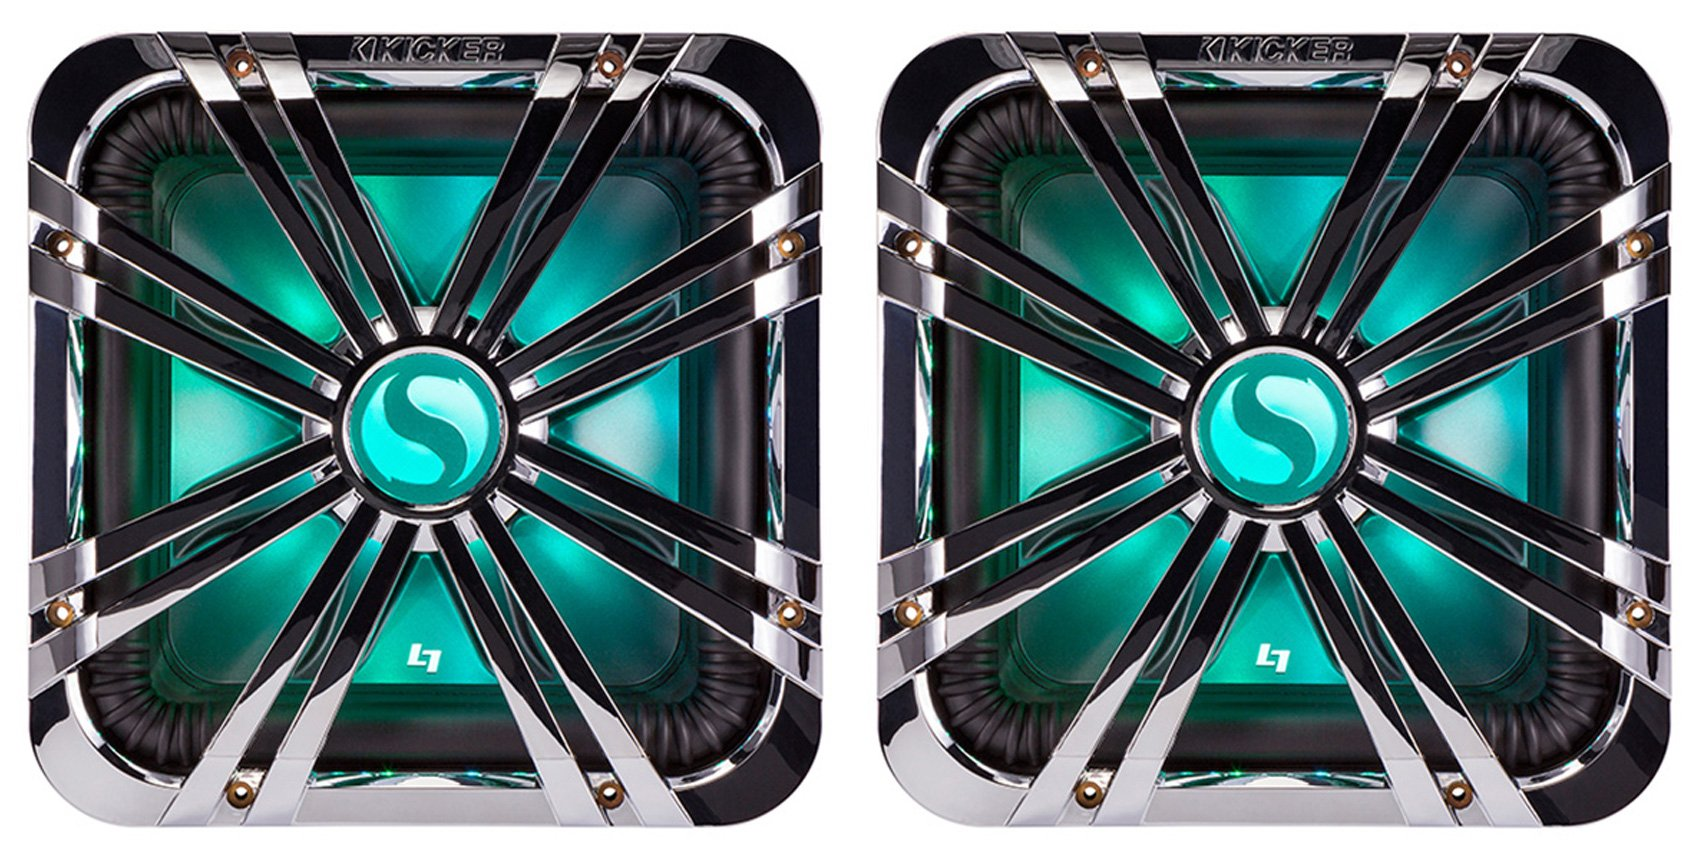 (2) Kicker 11L710GLCR 10'' Chrome LED Grilles 4 SoloBaric 11S10L7 Subwoofers Subs